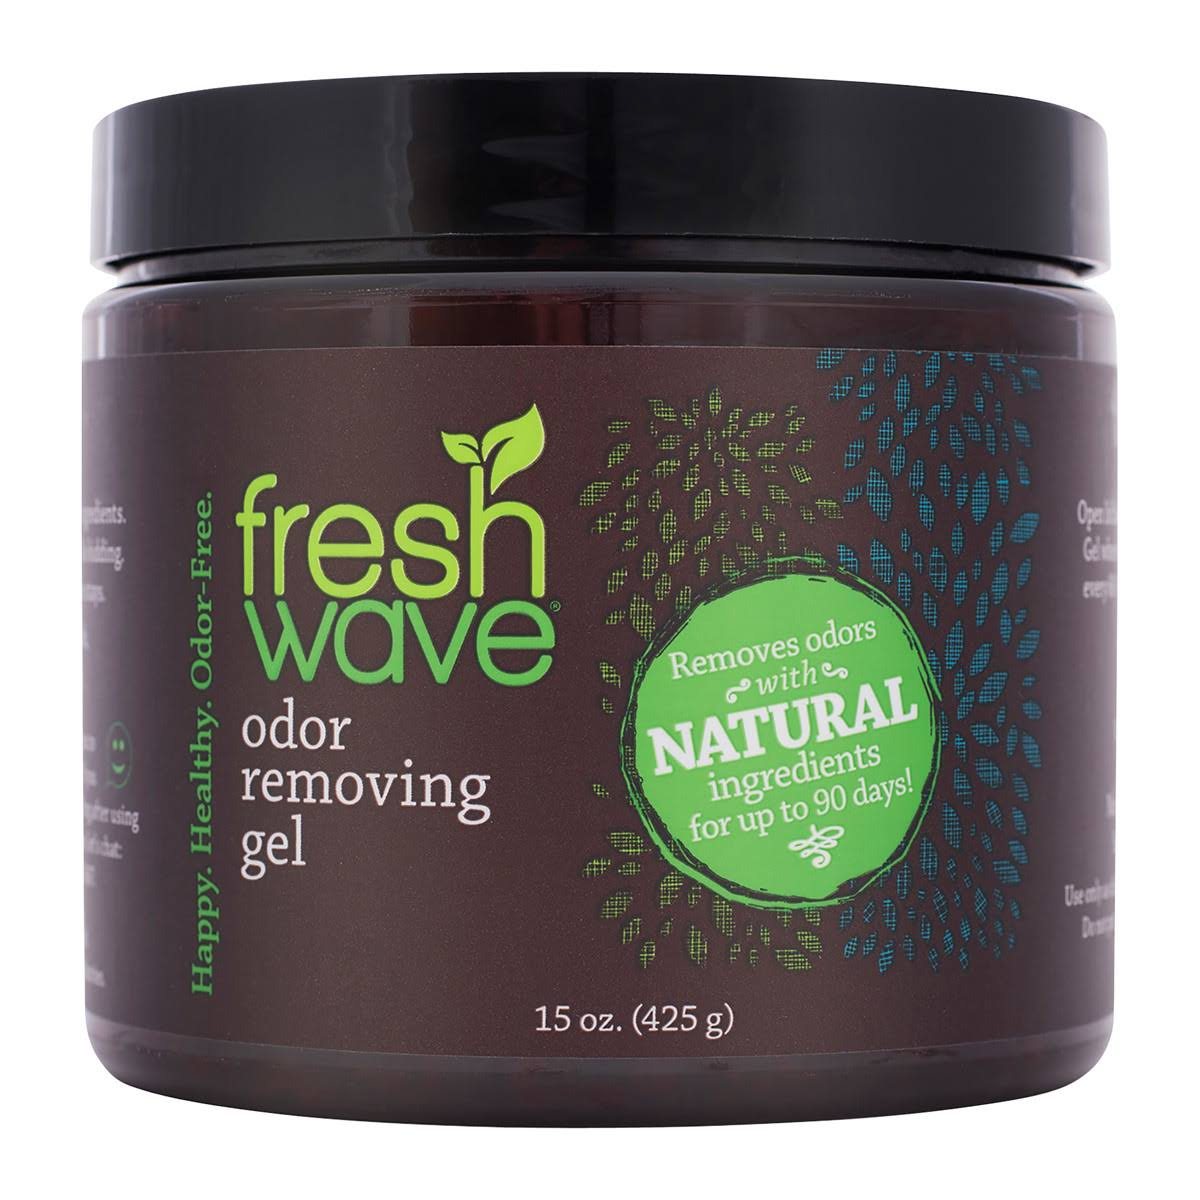 Fresh Wave Odor Removing Gel - 425g